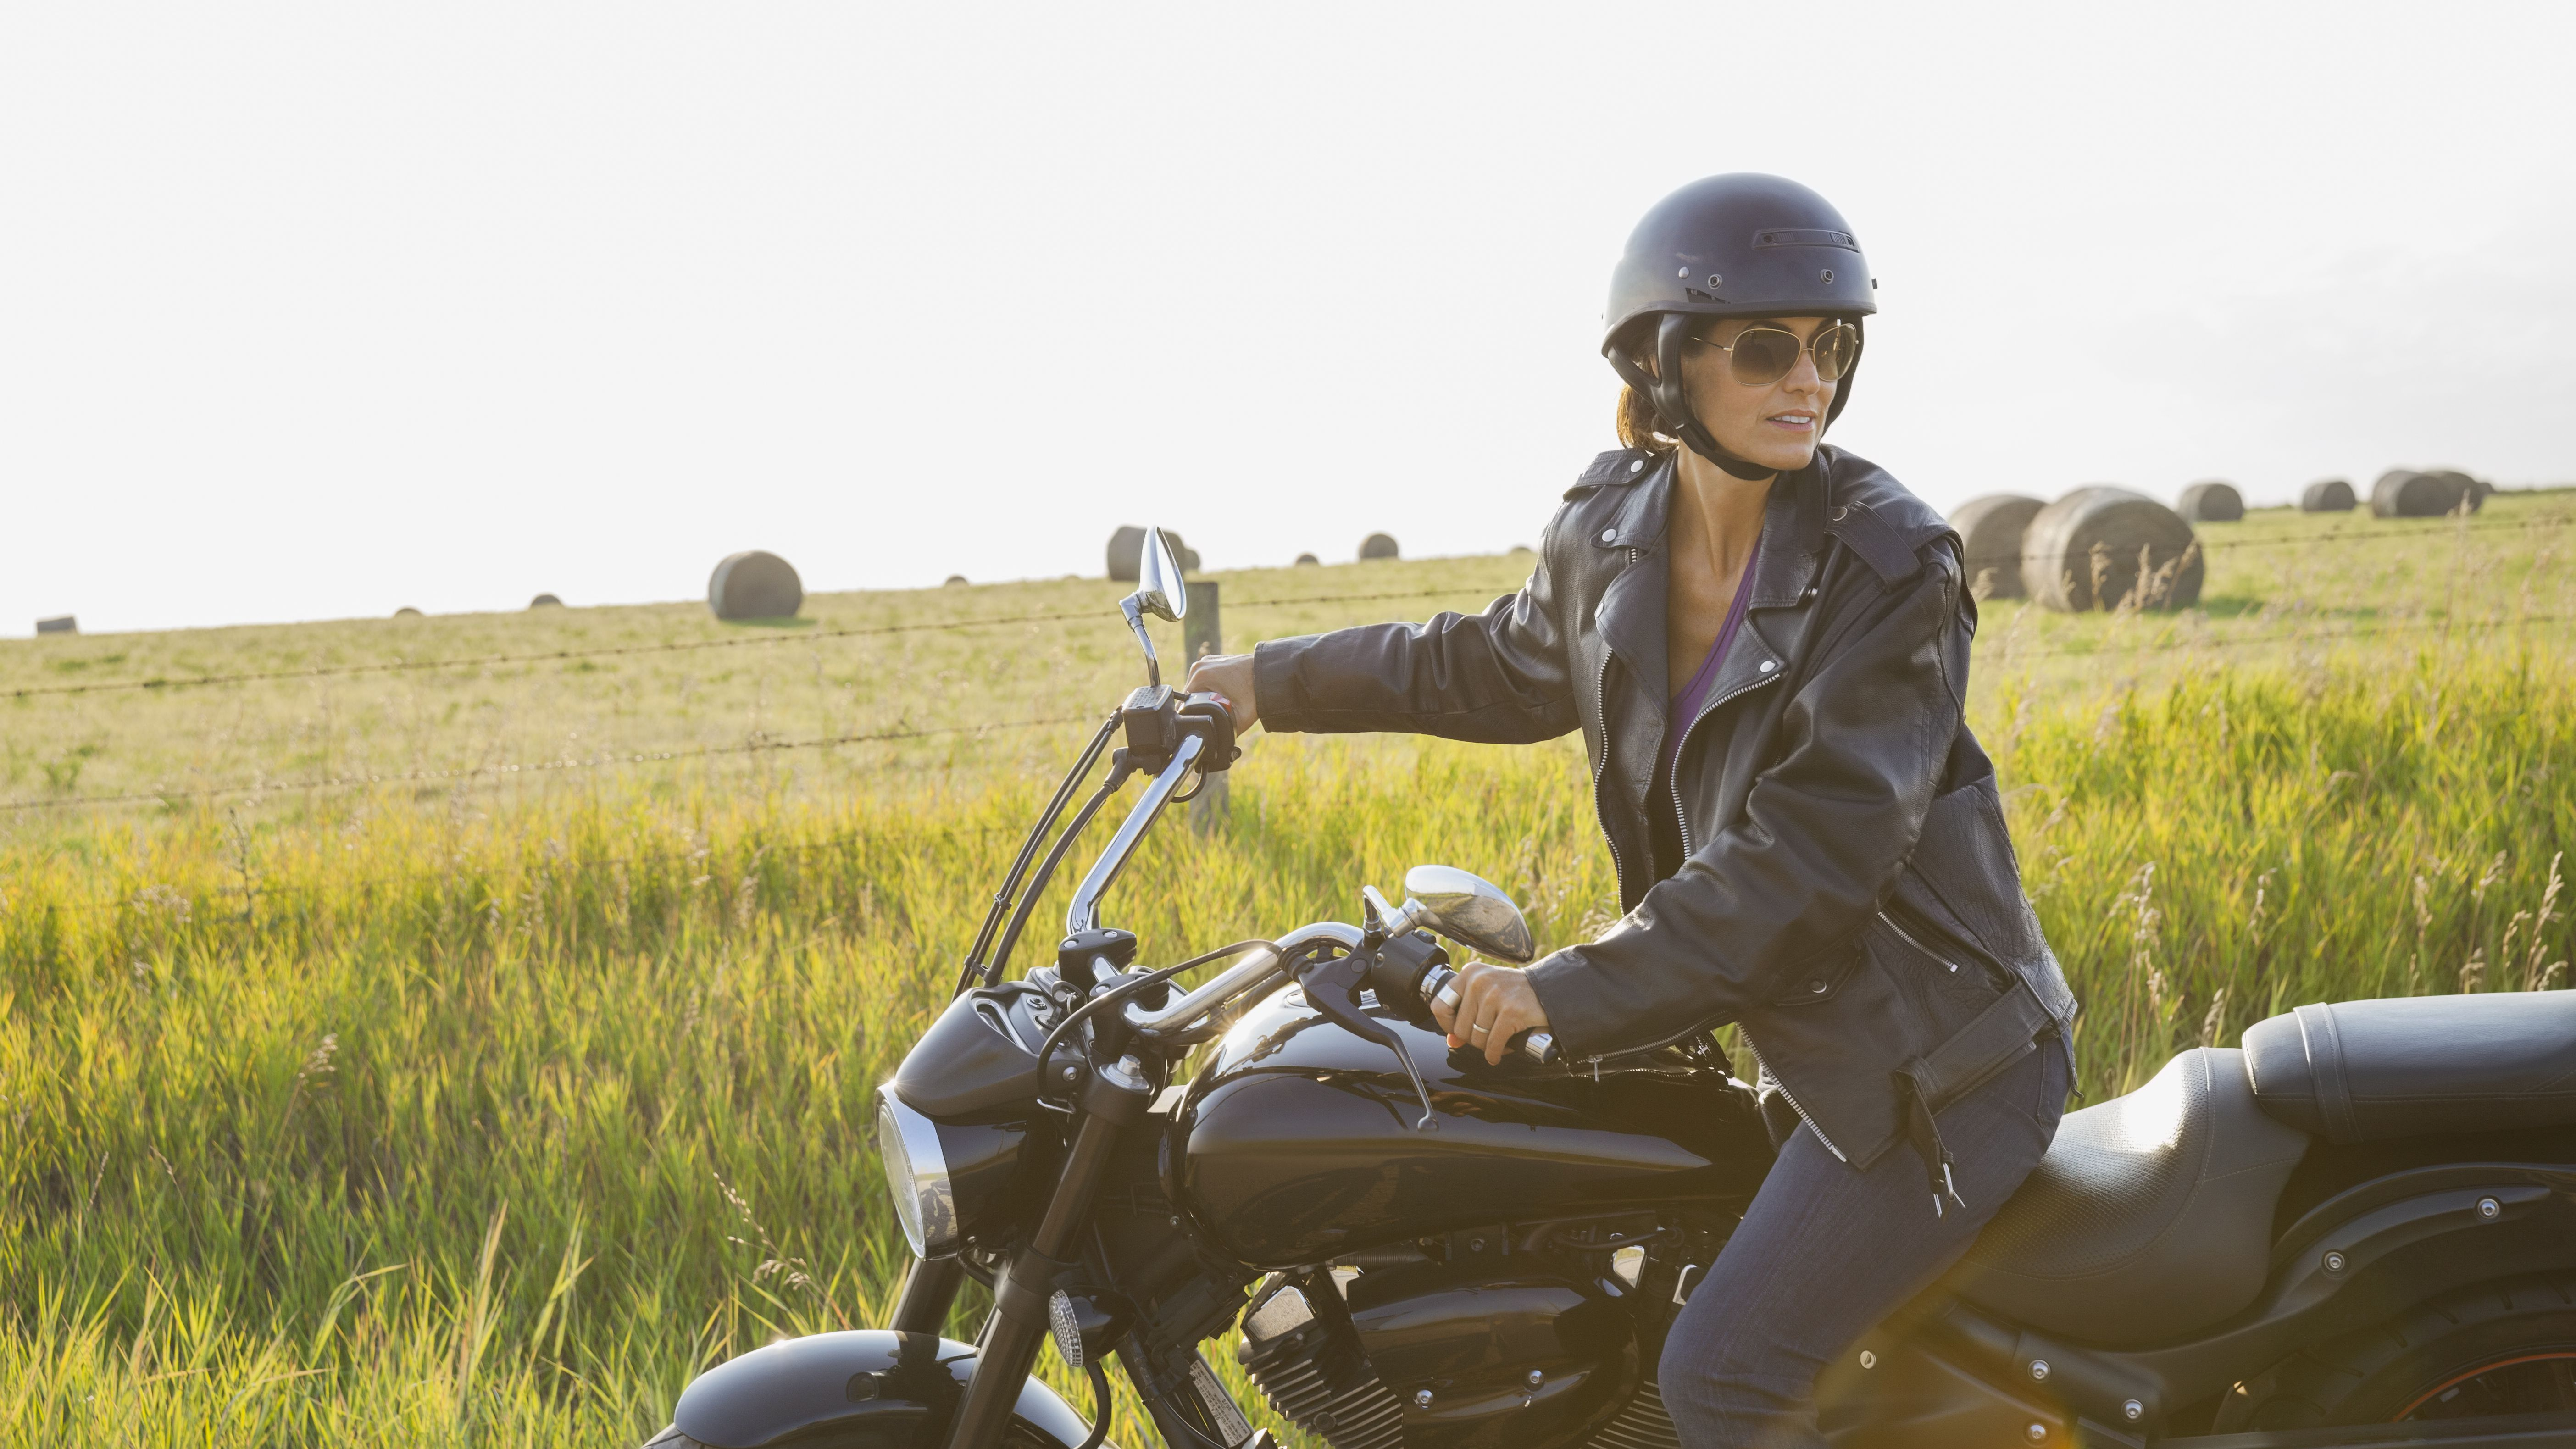 6c7bc0f0512 How to Ride a Motorcycle in 10 Simple Steps